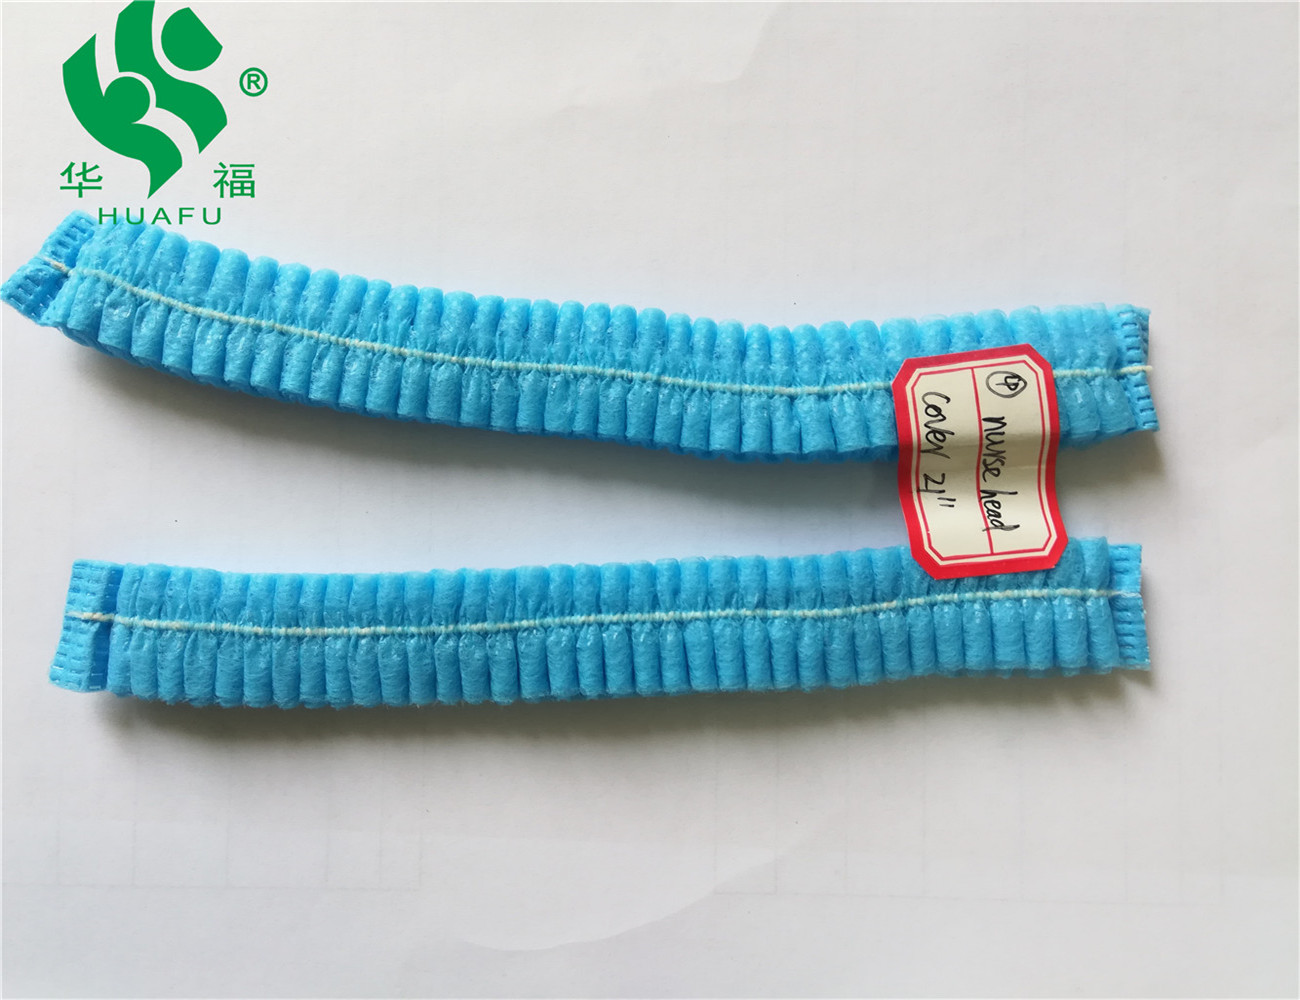 Knitted Customized En13795 Smms Reinforced Factory Price Sms Reinforcement Surgical Gown Clothes